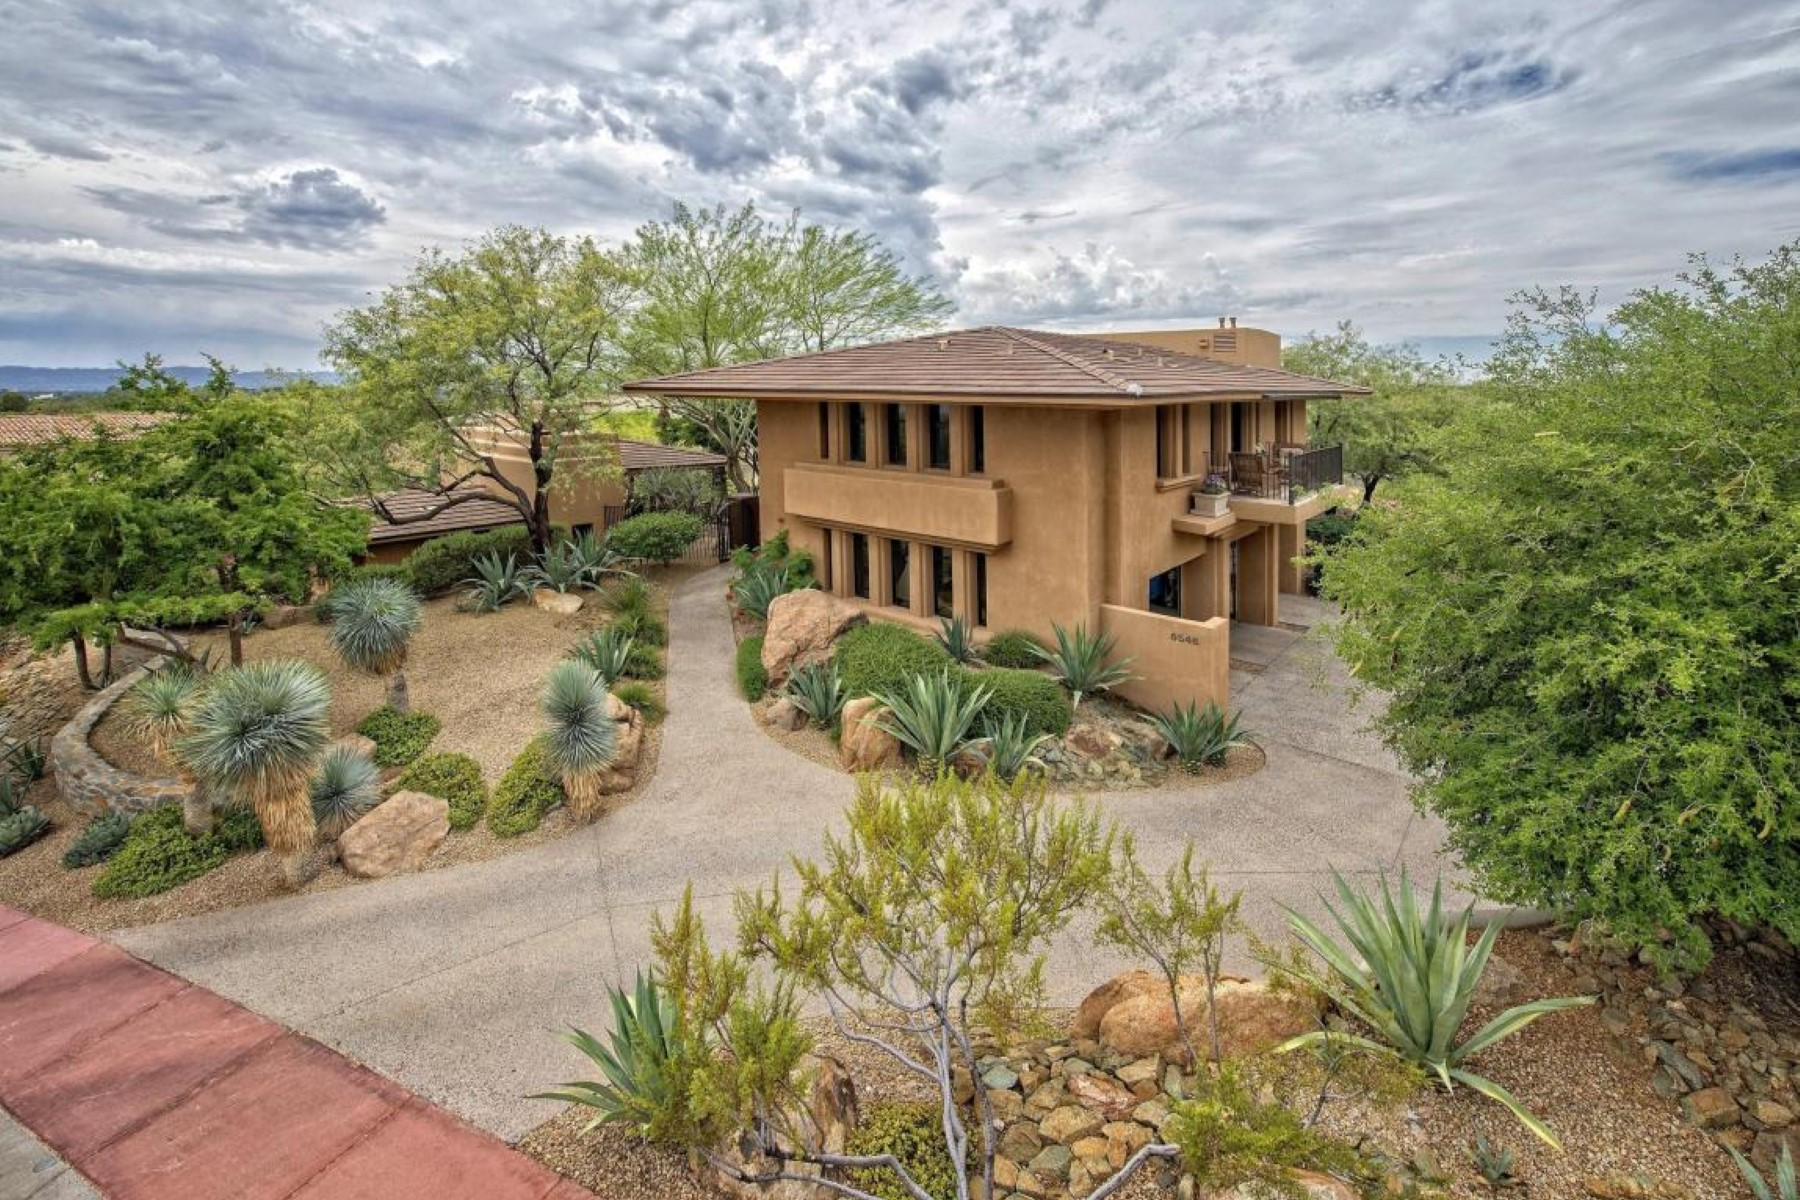 Single Family Home for Sale at This ''Jewel'' of the Biltmore Hillside Estates. 6546 N ARIZONA BILTMORE CIR N Phoenix, Arizona 85016 United States